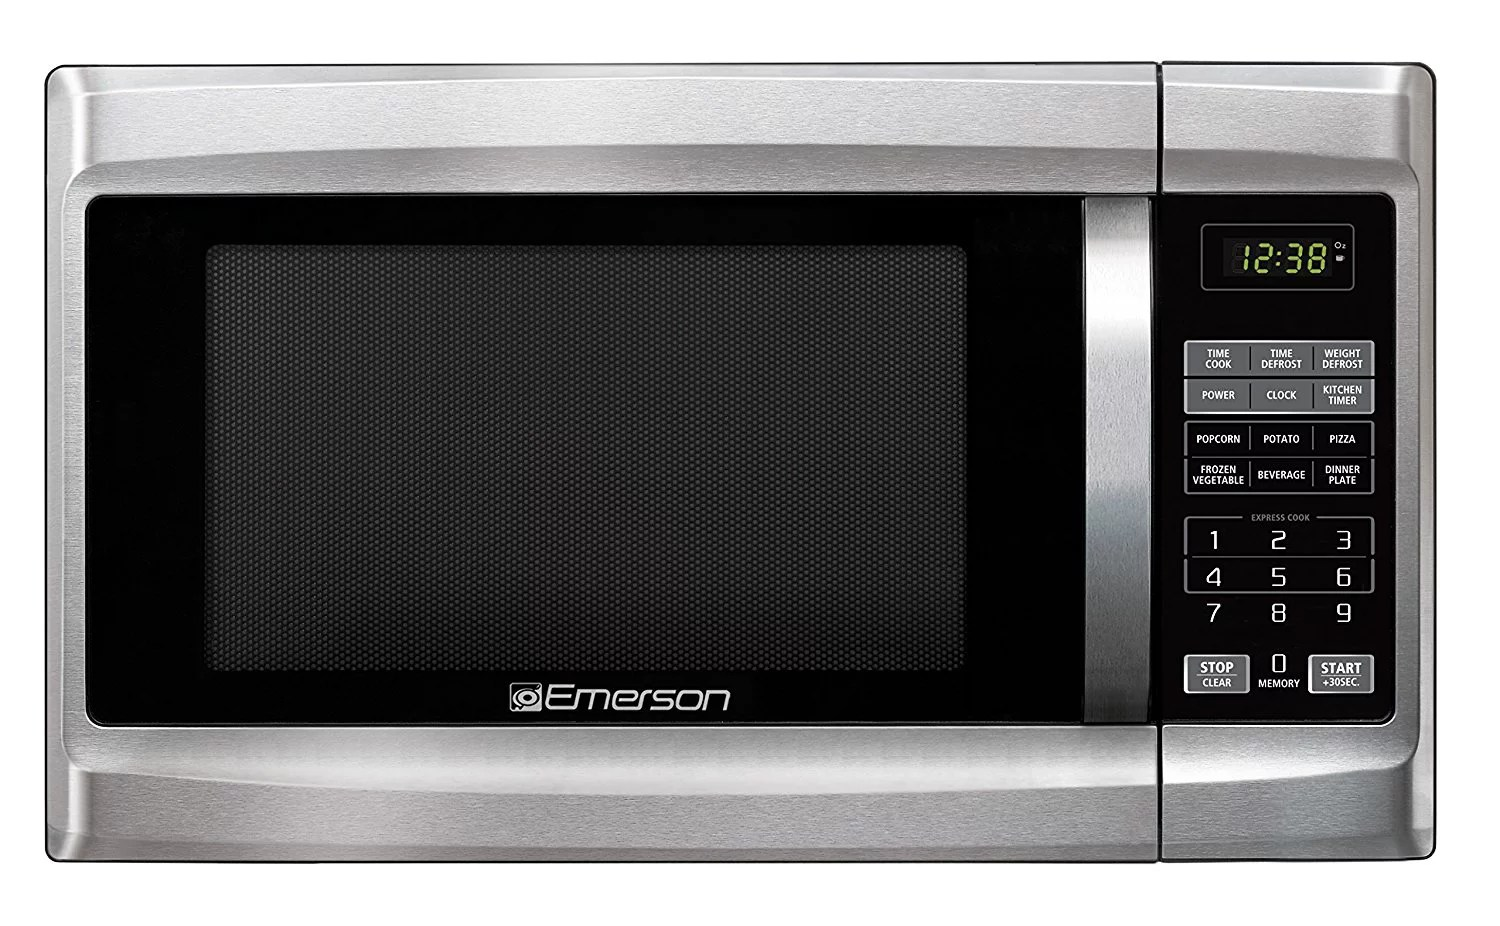 emerson mw1338sb 1 3 cu ft 1000 watt touch control microwave oven stainless steel